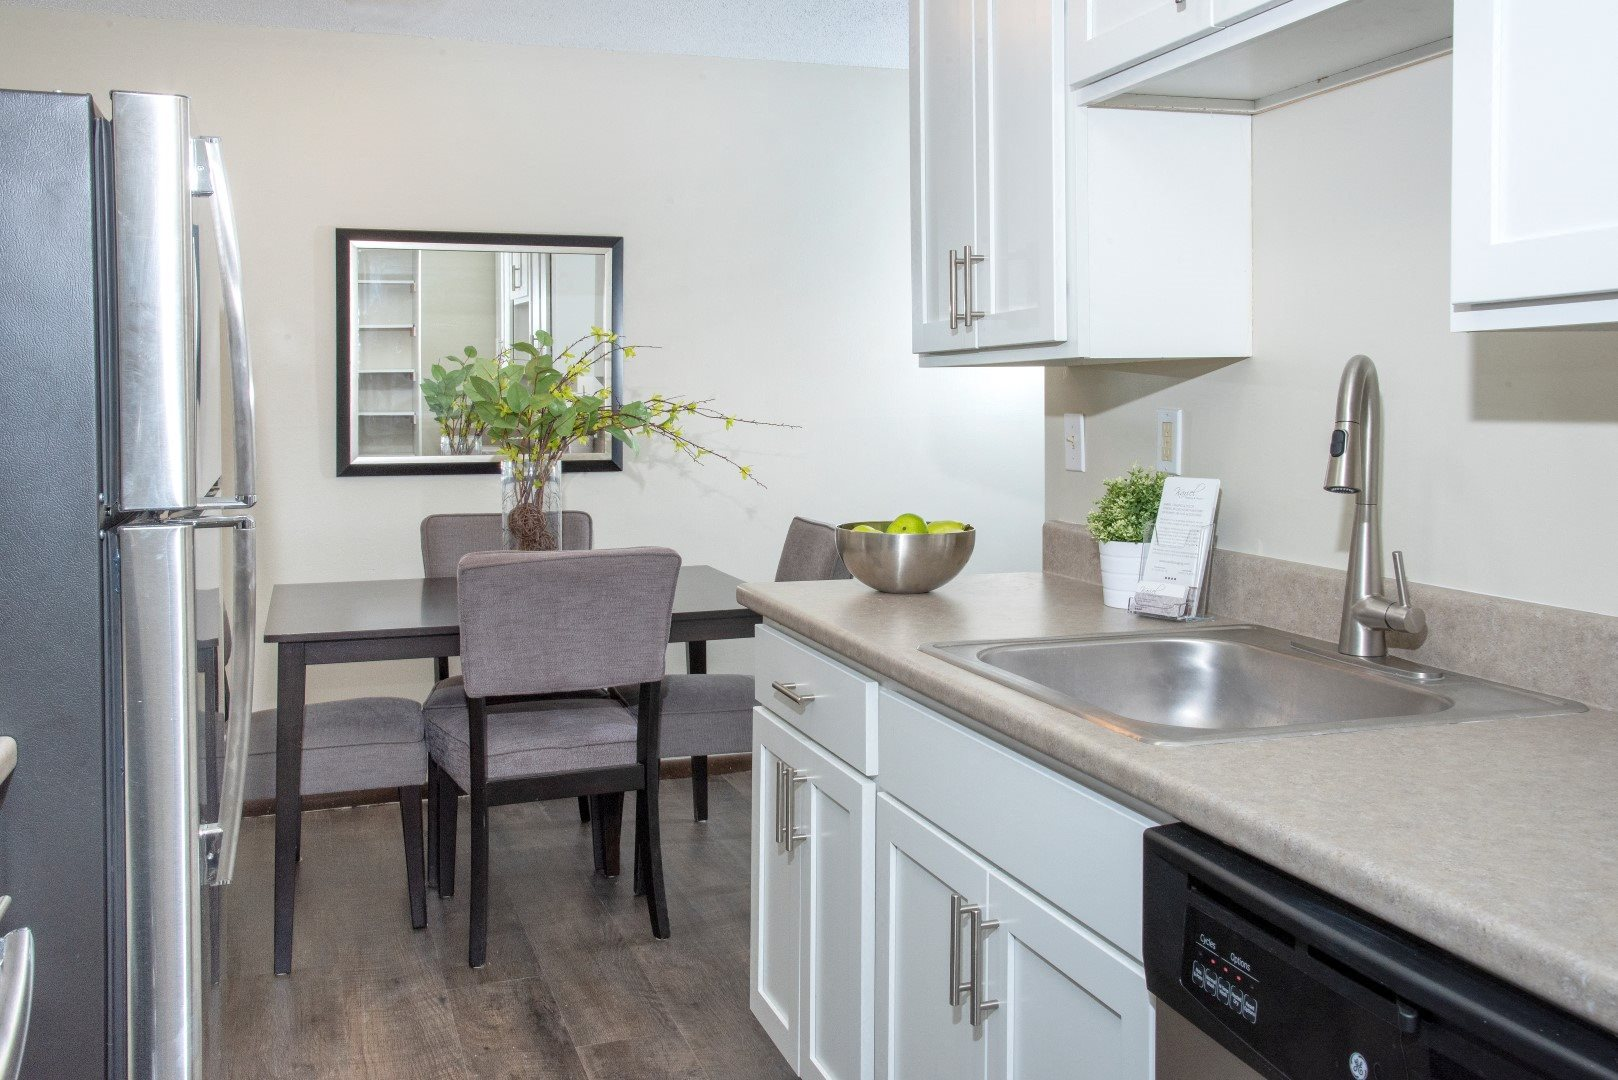 600 10th Ave Apartment Kitchen with Stainless Steal Appliances and White Cabinetry